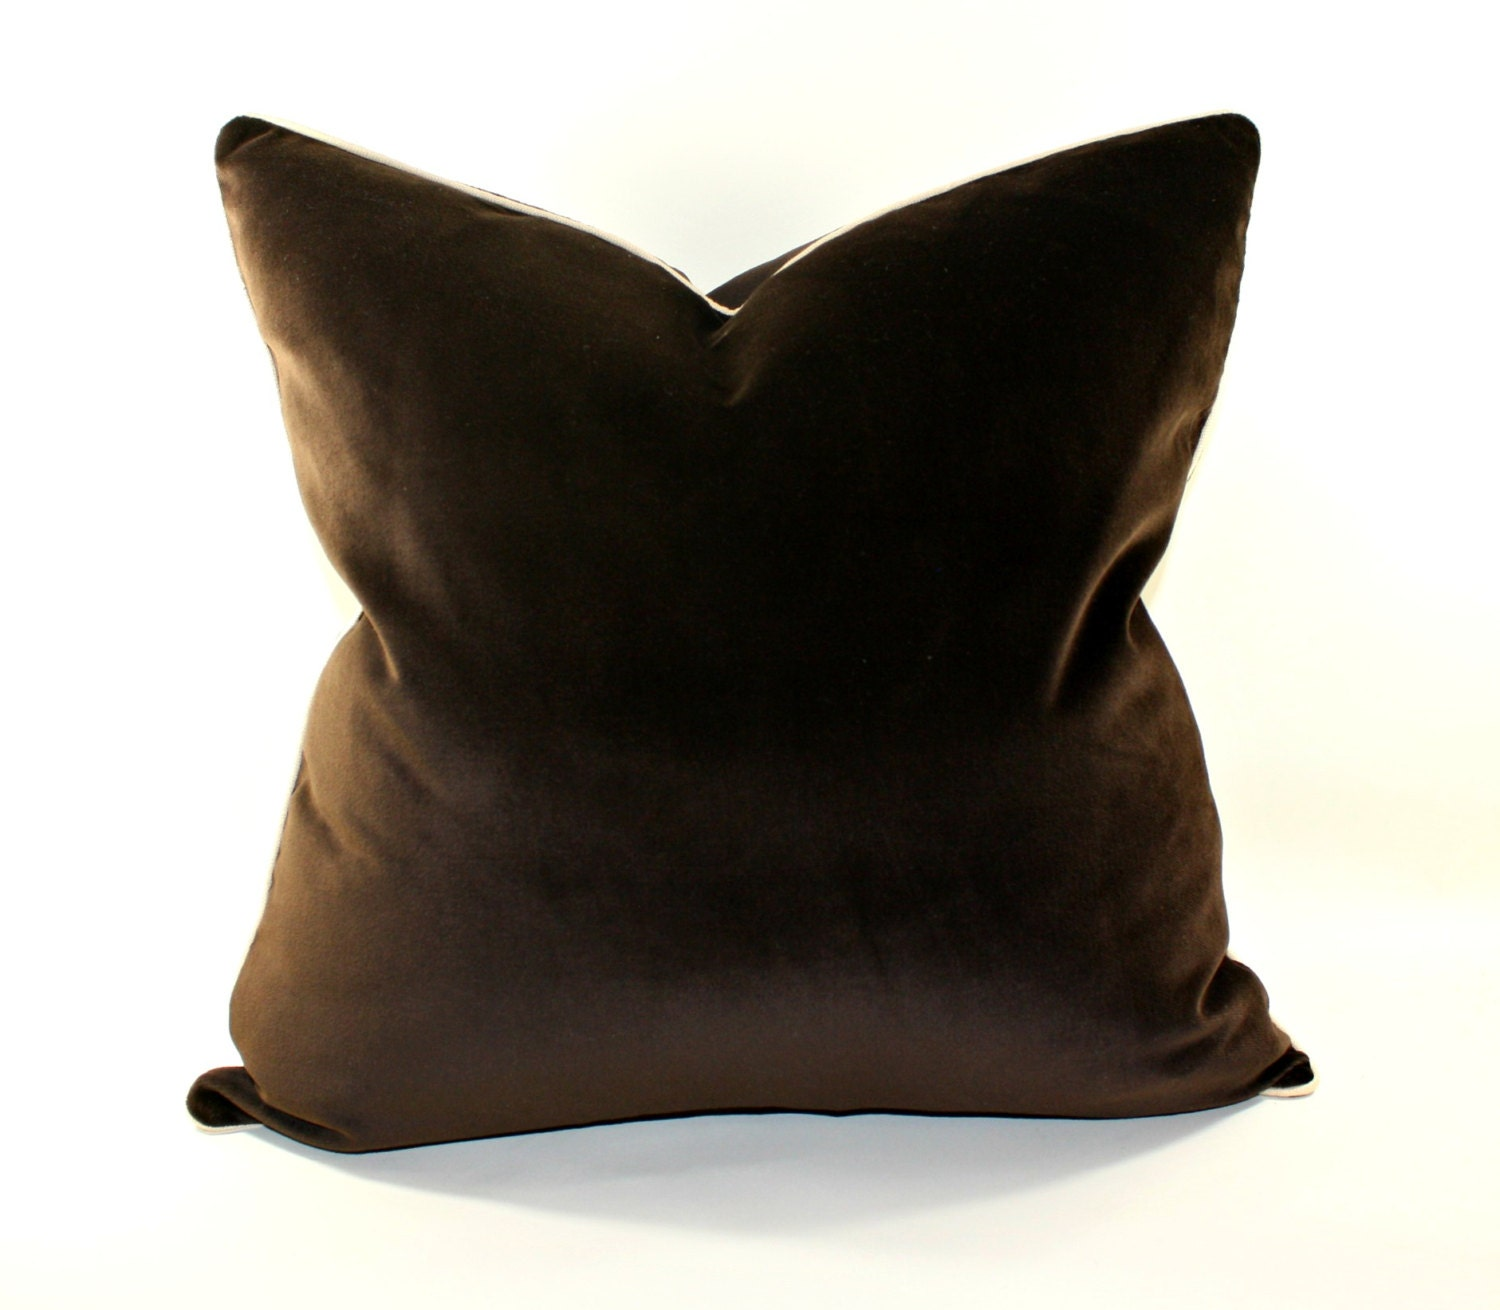 Dark Brown Throw Pillow : Velvet Pillow Cover Chocolate Brown Decorative Pillow Cover